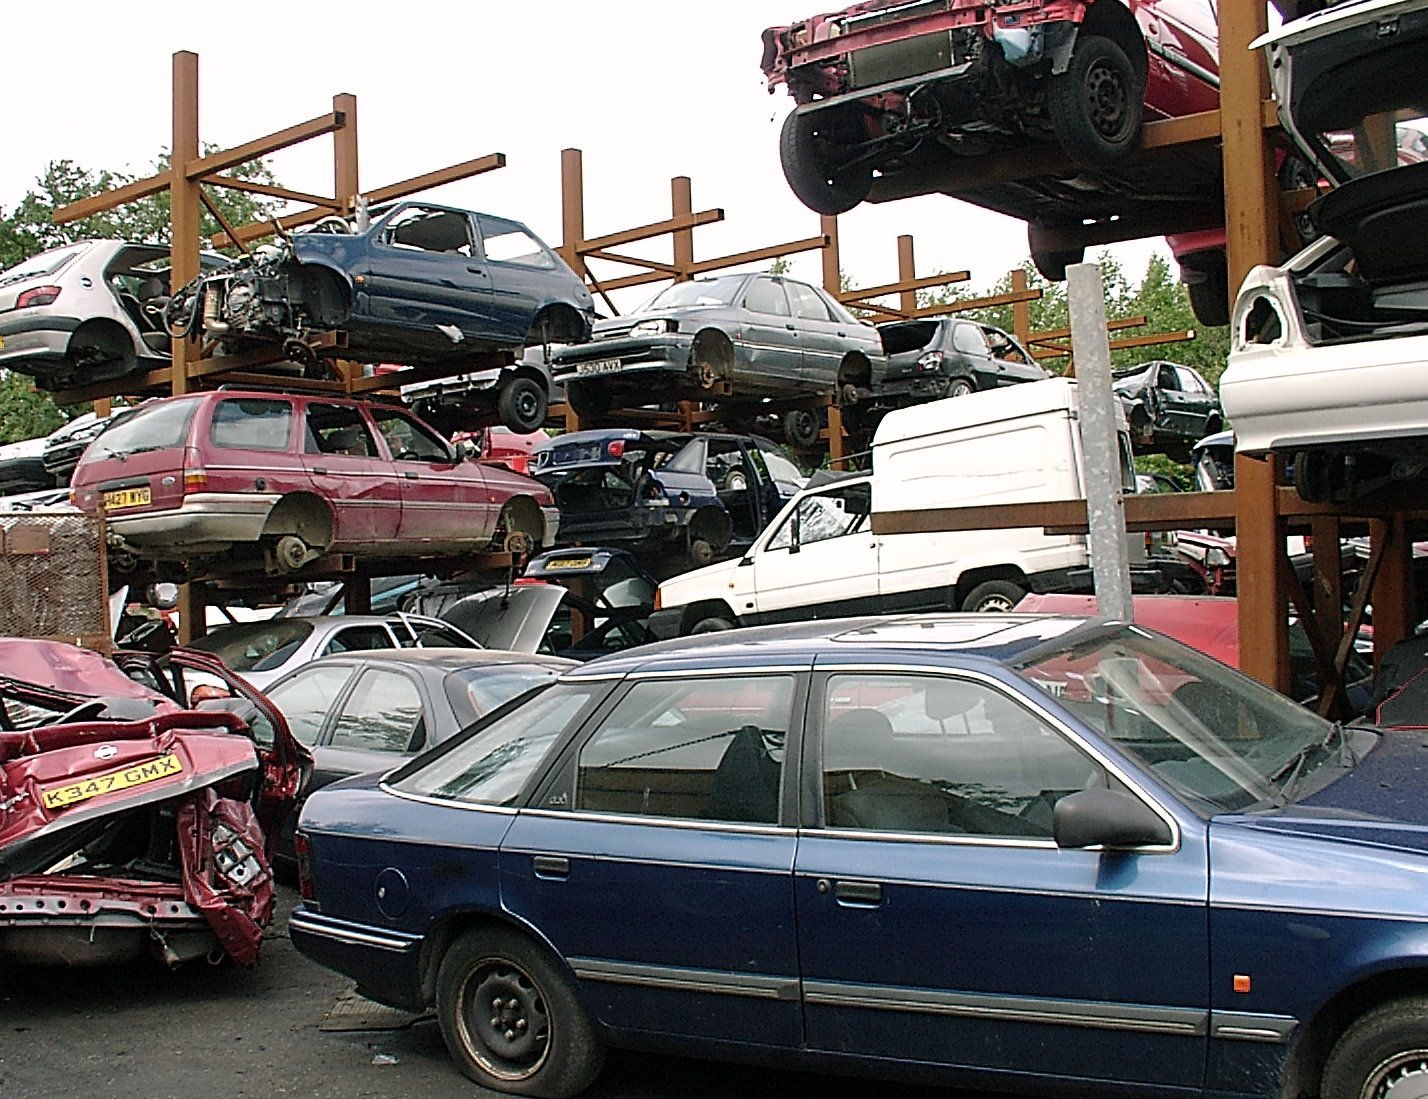 Junk Yards In New Jersey That Buy Cars